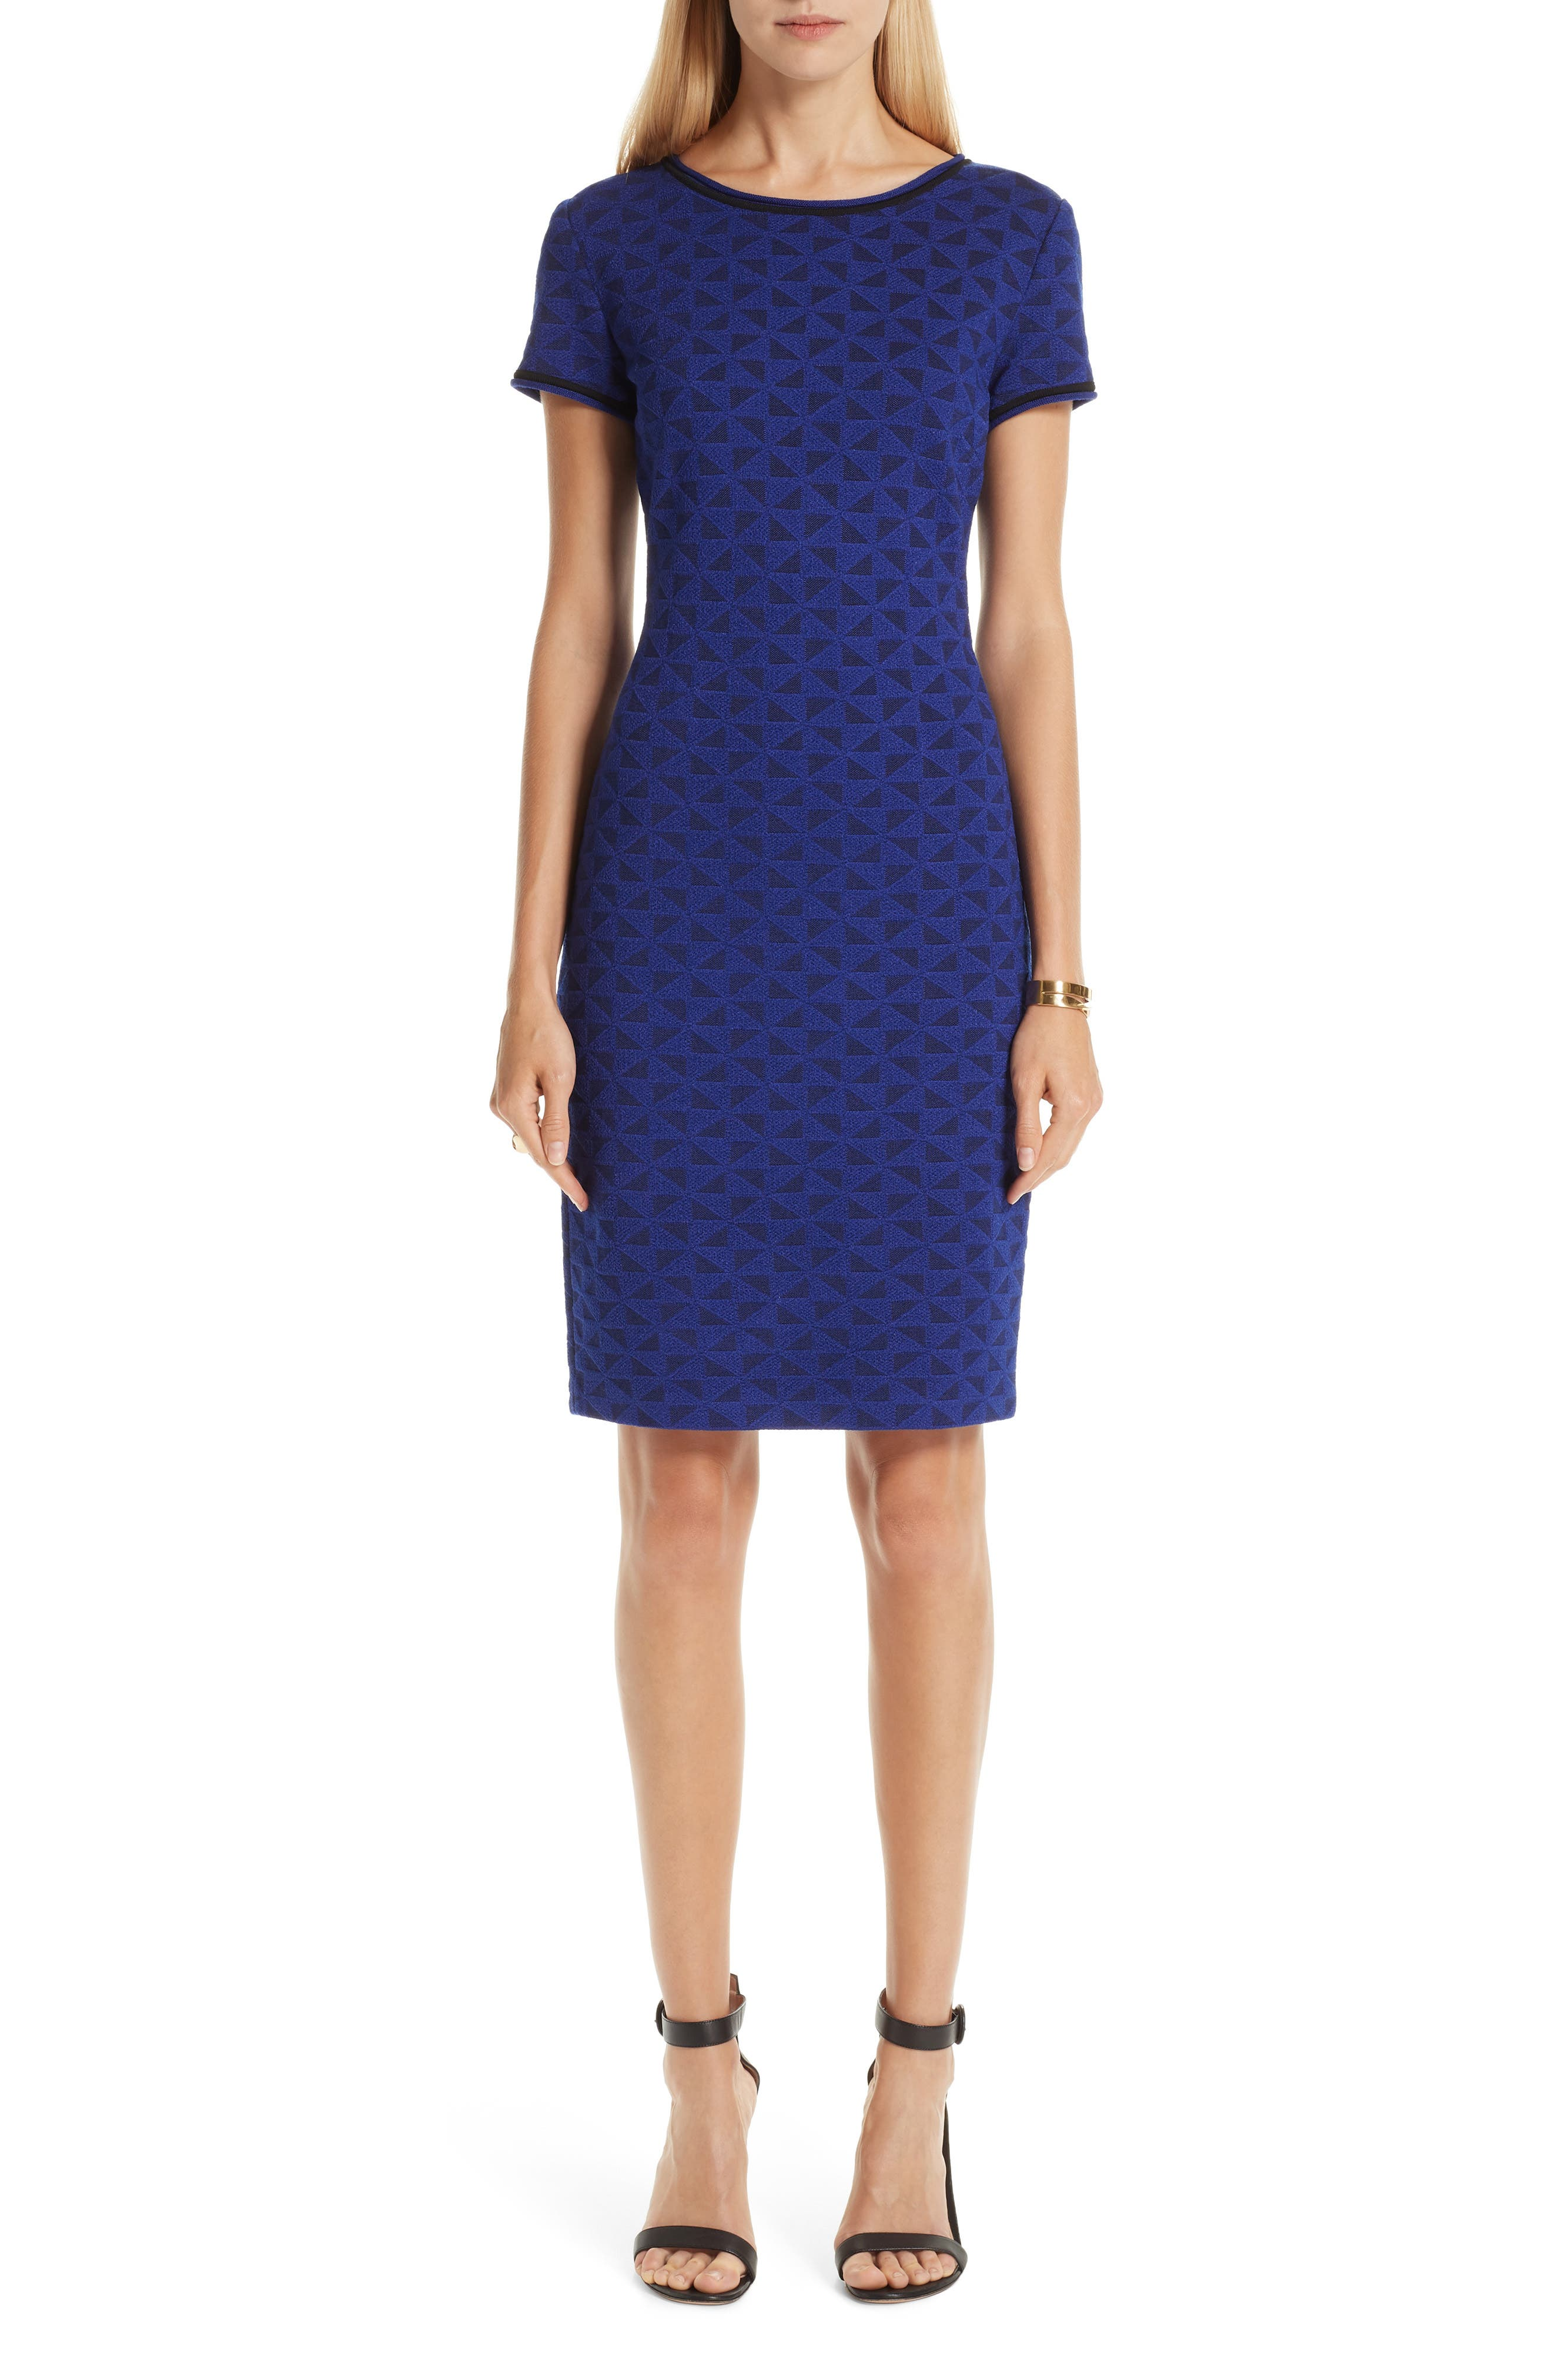 ST. JOHN COLLECTION, Micro Geo Blister Knit Sheath Dress, Alternate thumbnail 8, color, CAVIAR/ SAPPHIRE